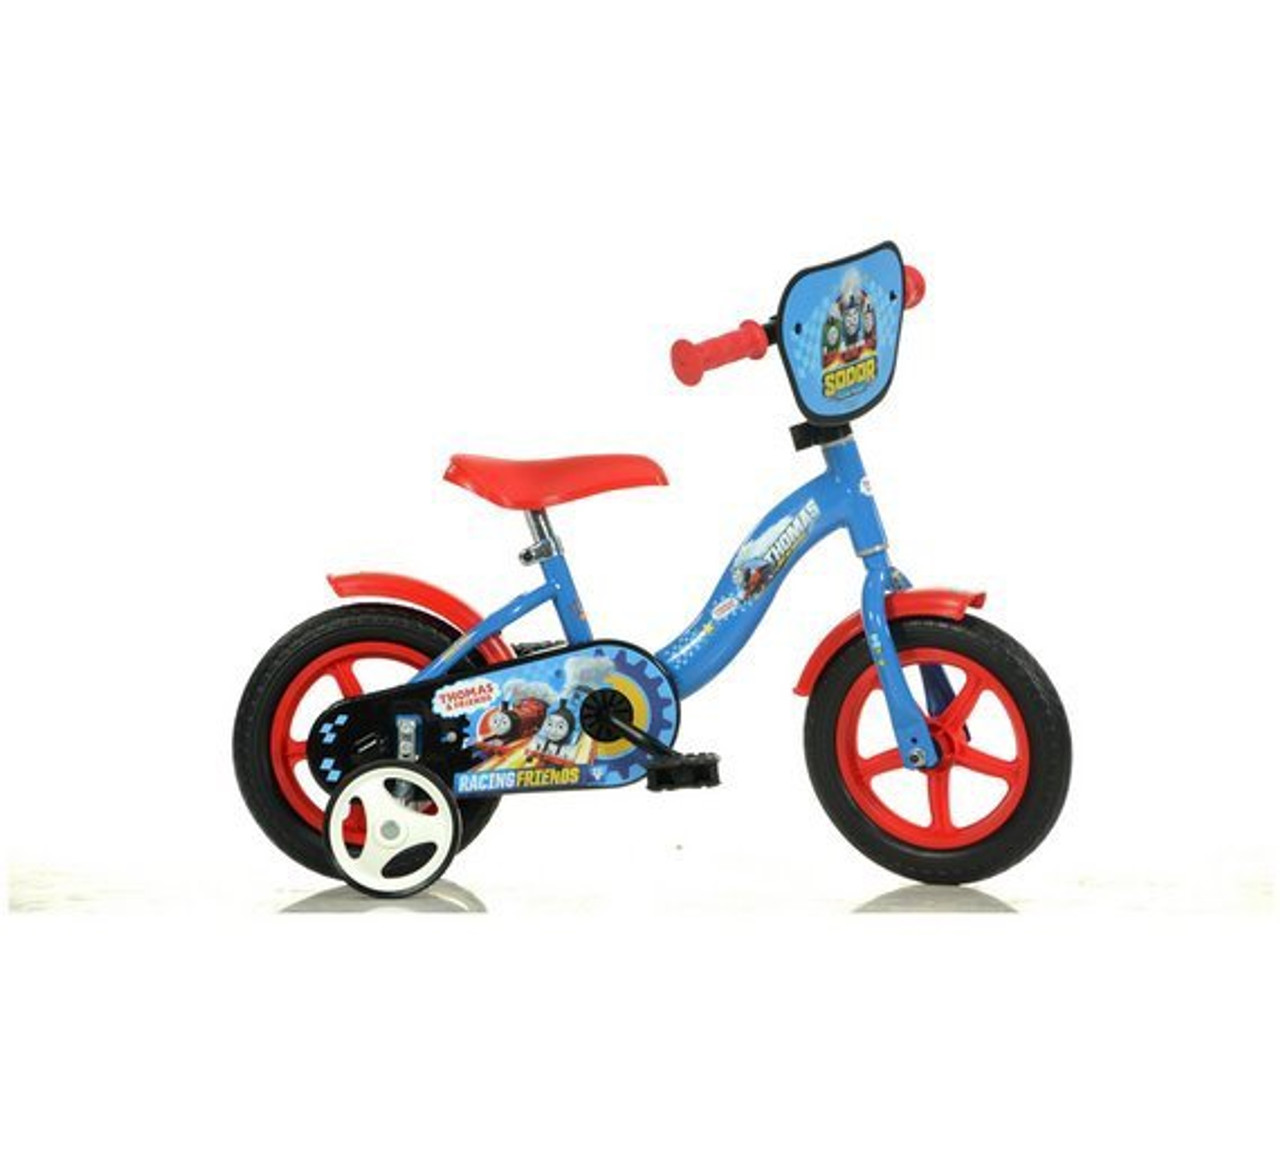 THOMAS & FRIENDS BICYCLE 10''